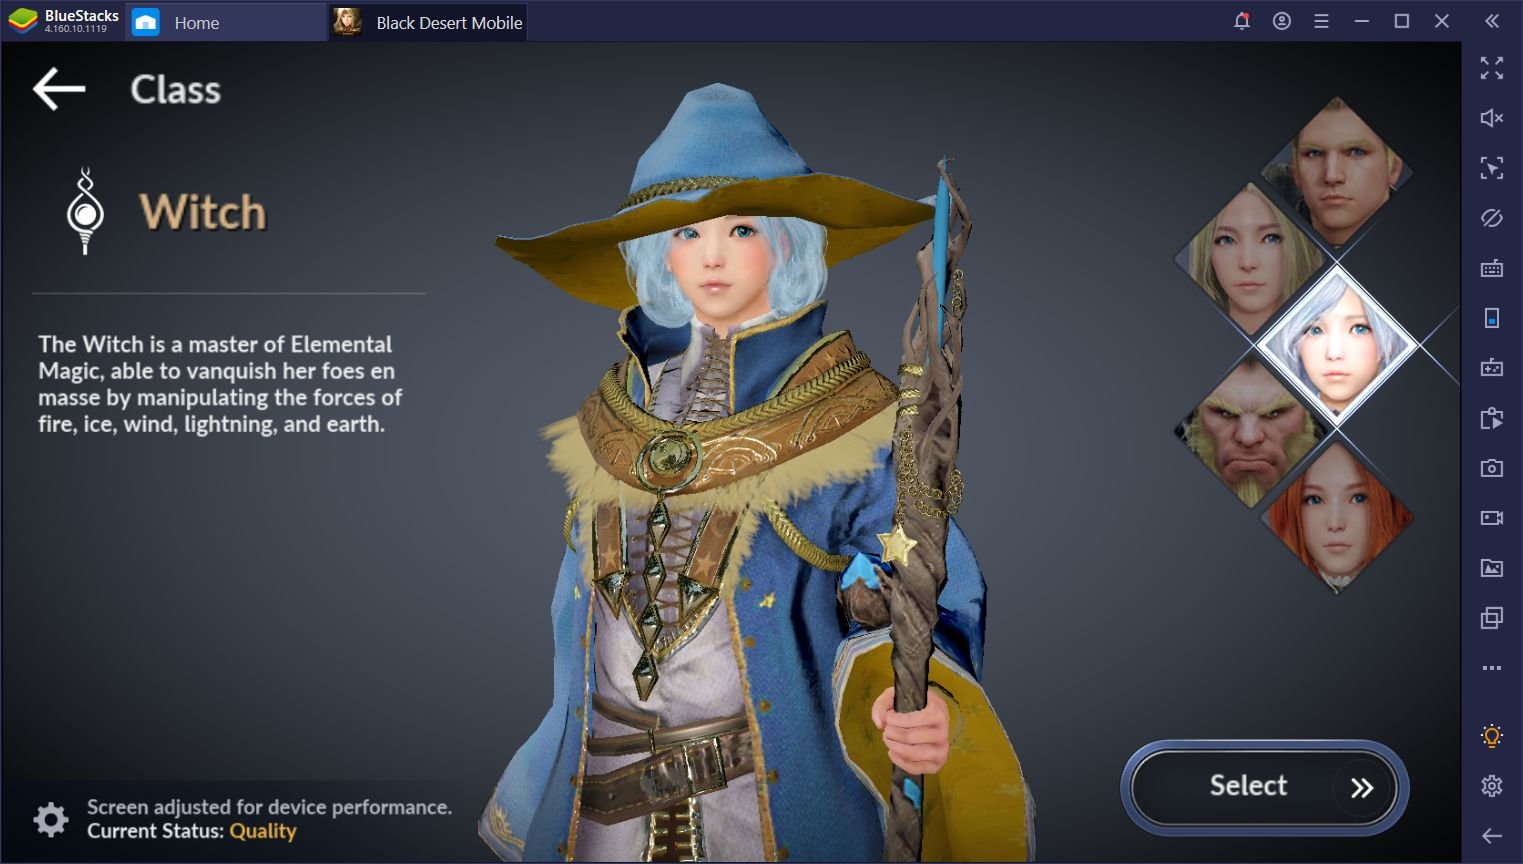 Black Desert Mobile on PC- What to Expect from the Sorceress Class